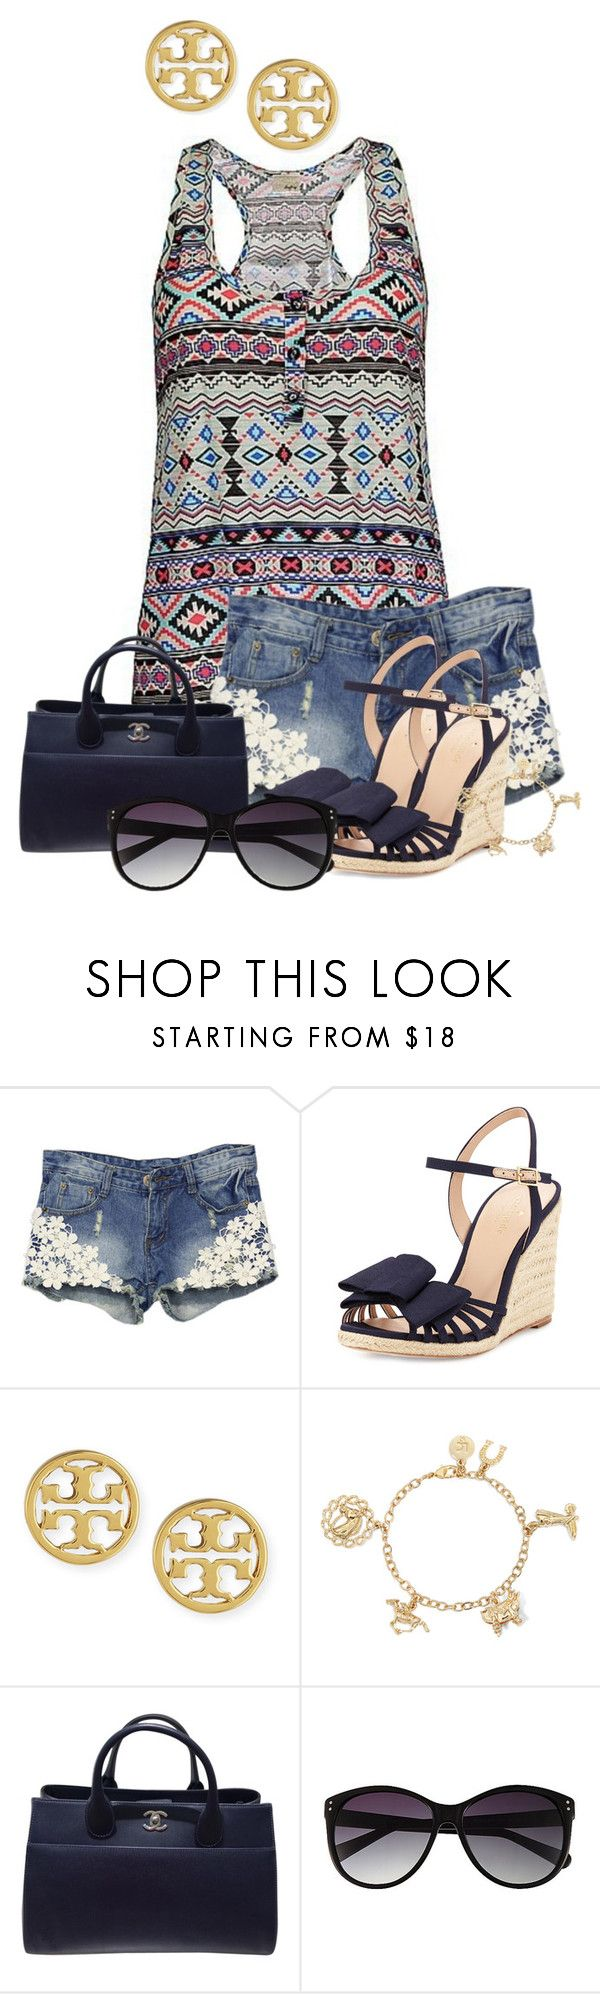 """""""The momentous occasion that will mark the start of my sorry death"""" by huntress-383 ❤ liked on Polyvore featuring WithChic, Kate Spade, Tory Burch, Liz Claiborne, Chanel and Vince Camuto"""